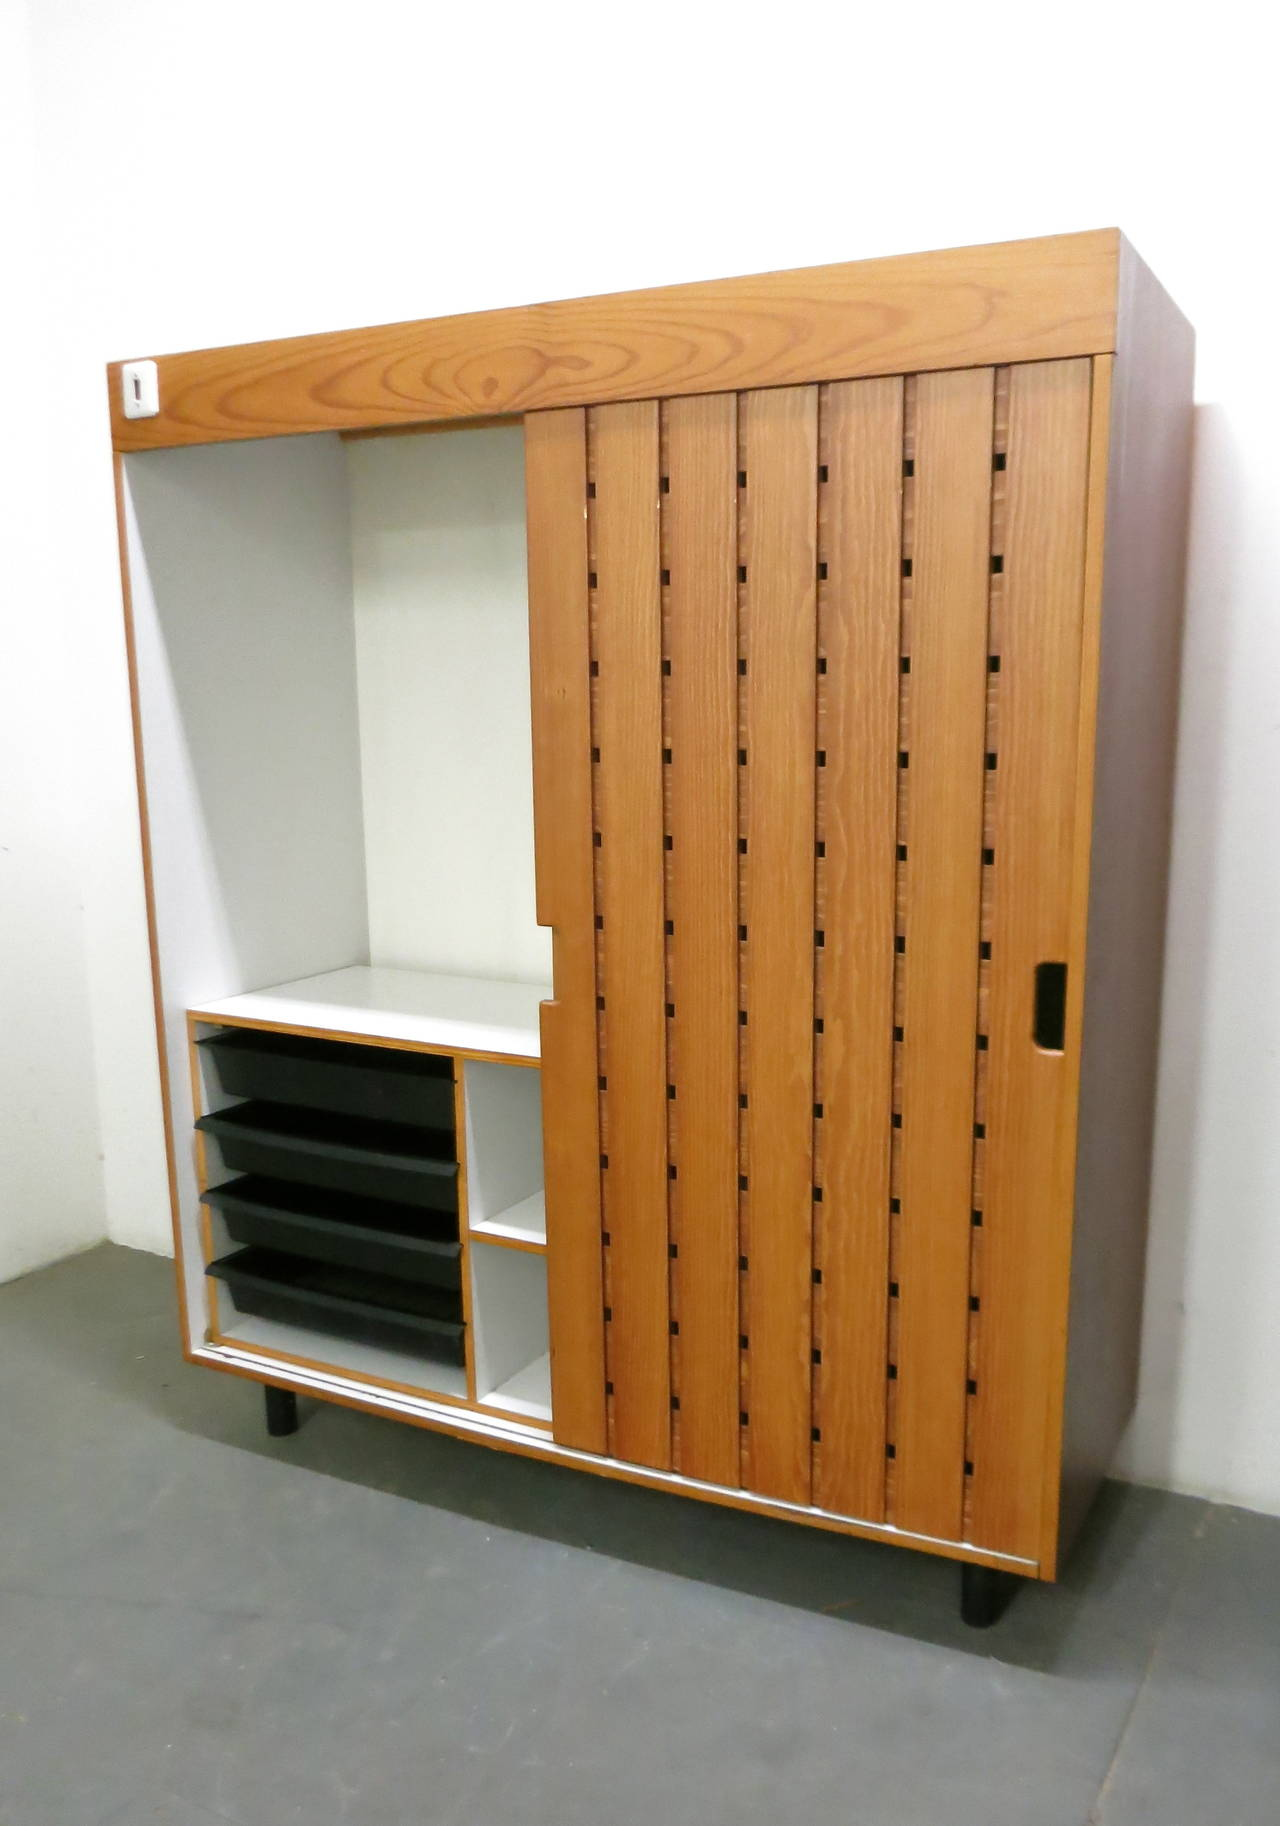 French Pair of Wardrobes by Charlotte Perriand, in 1967 for Les Arc Ski Lodge, France For Sale